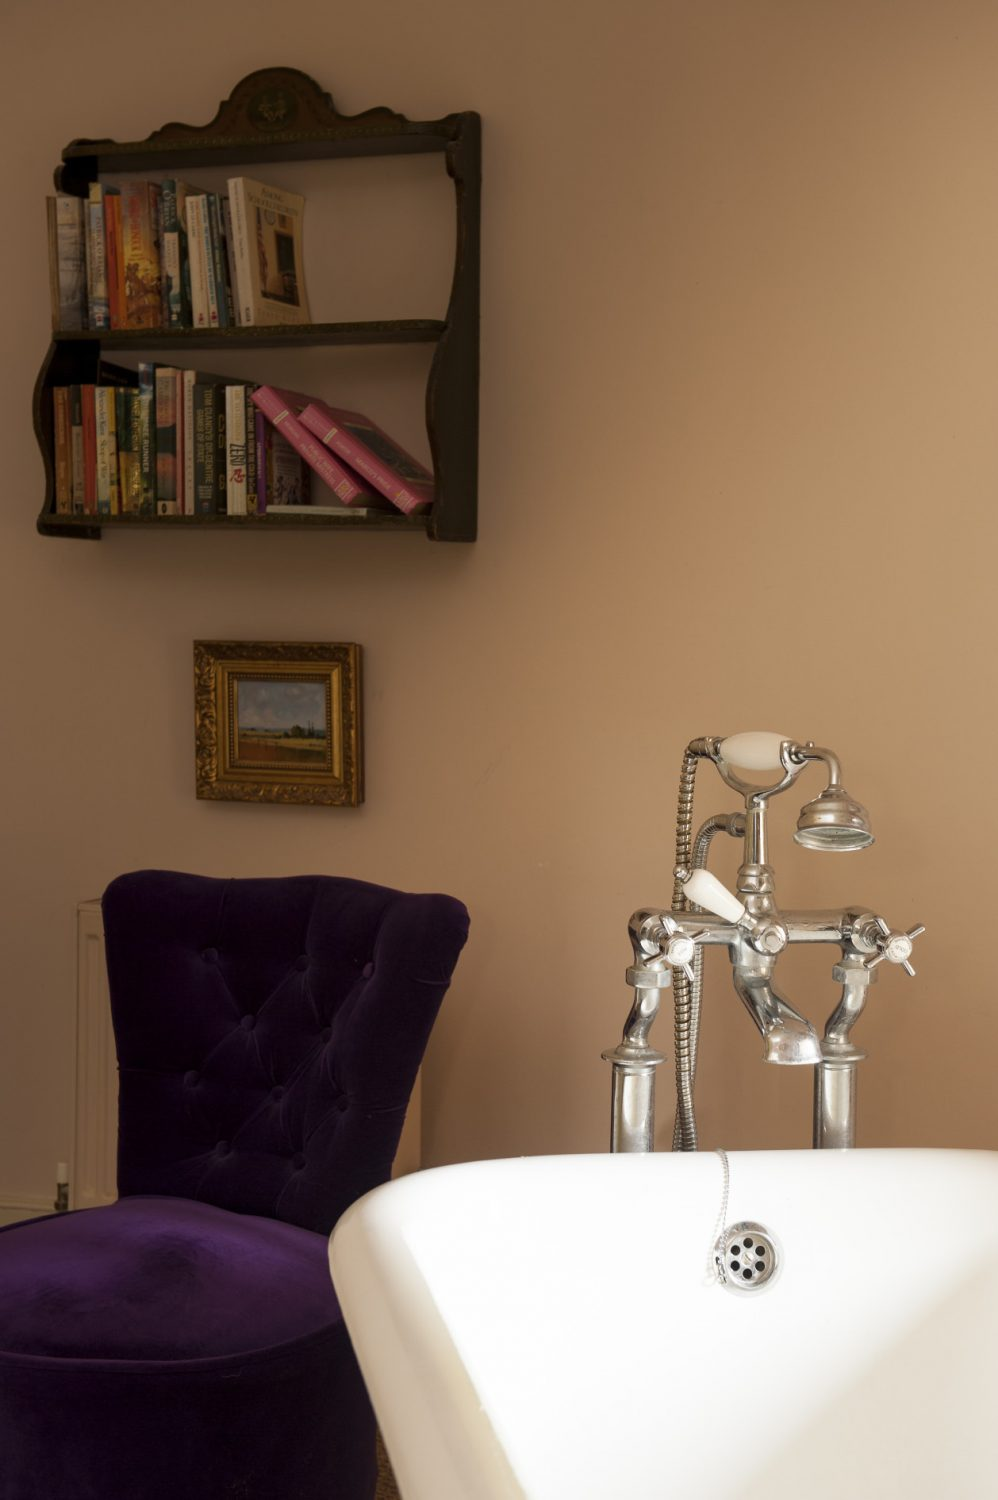 A purple velvet upholstered chair sits by the bath